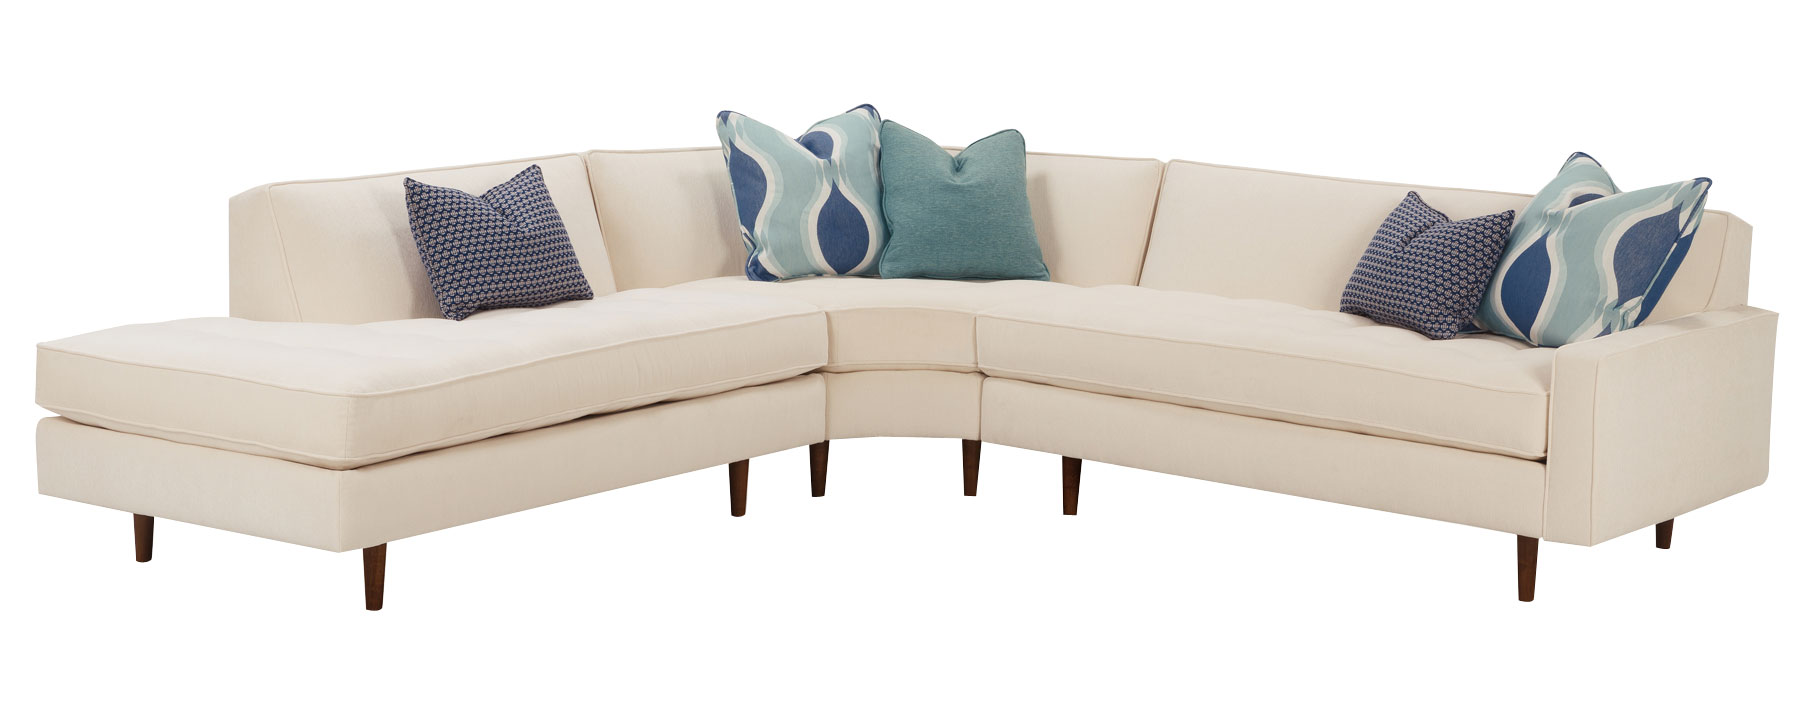 Zoey Designer Style Mid Century Modern Sectional